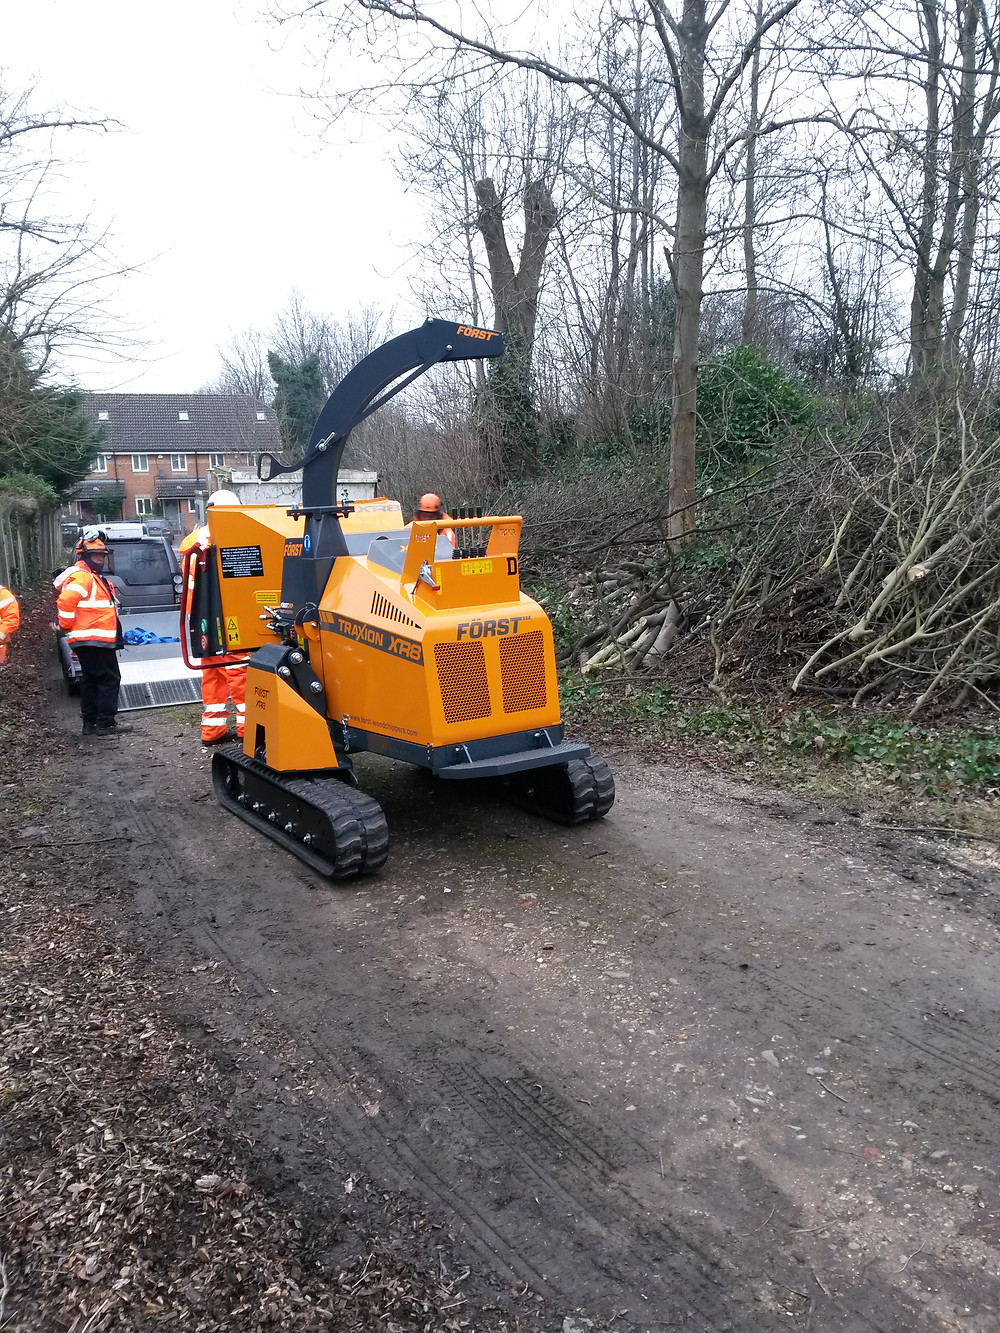 Forst XR8 Traxion Embankment Woodchipper used by Cleshar